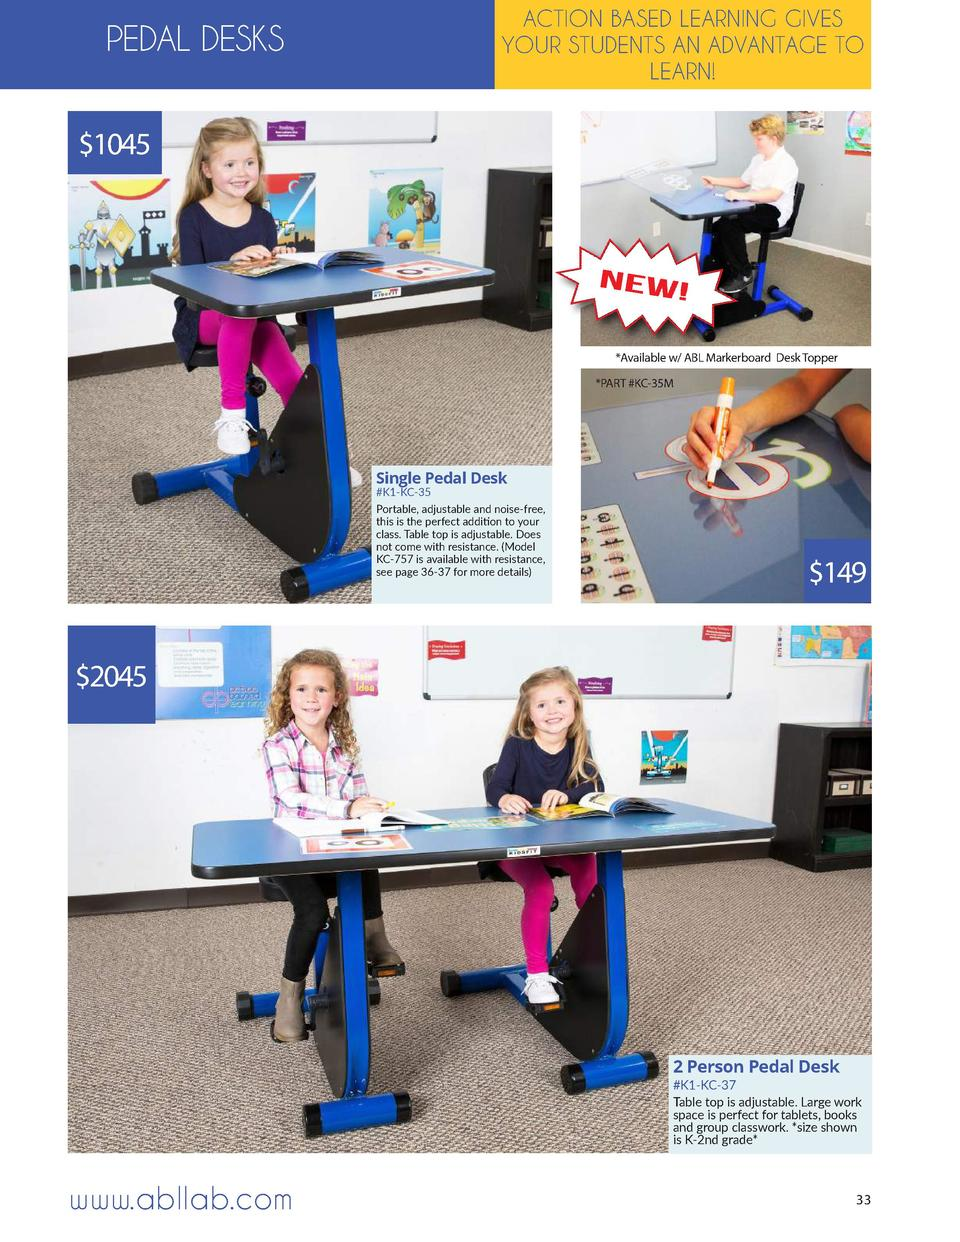 ACTION BASED LEARNING GIVES YOUR STUDENTS AN ADVANTAGE TO LEARN   PEDAL DESKS  1045   Available w  ABL Markerboard Desk To...